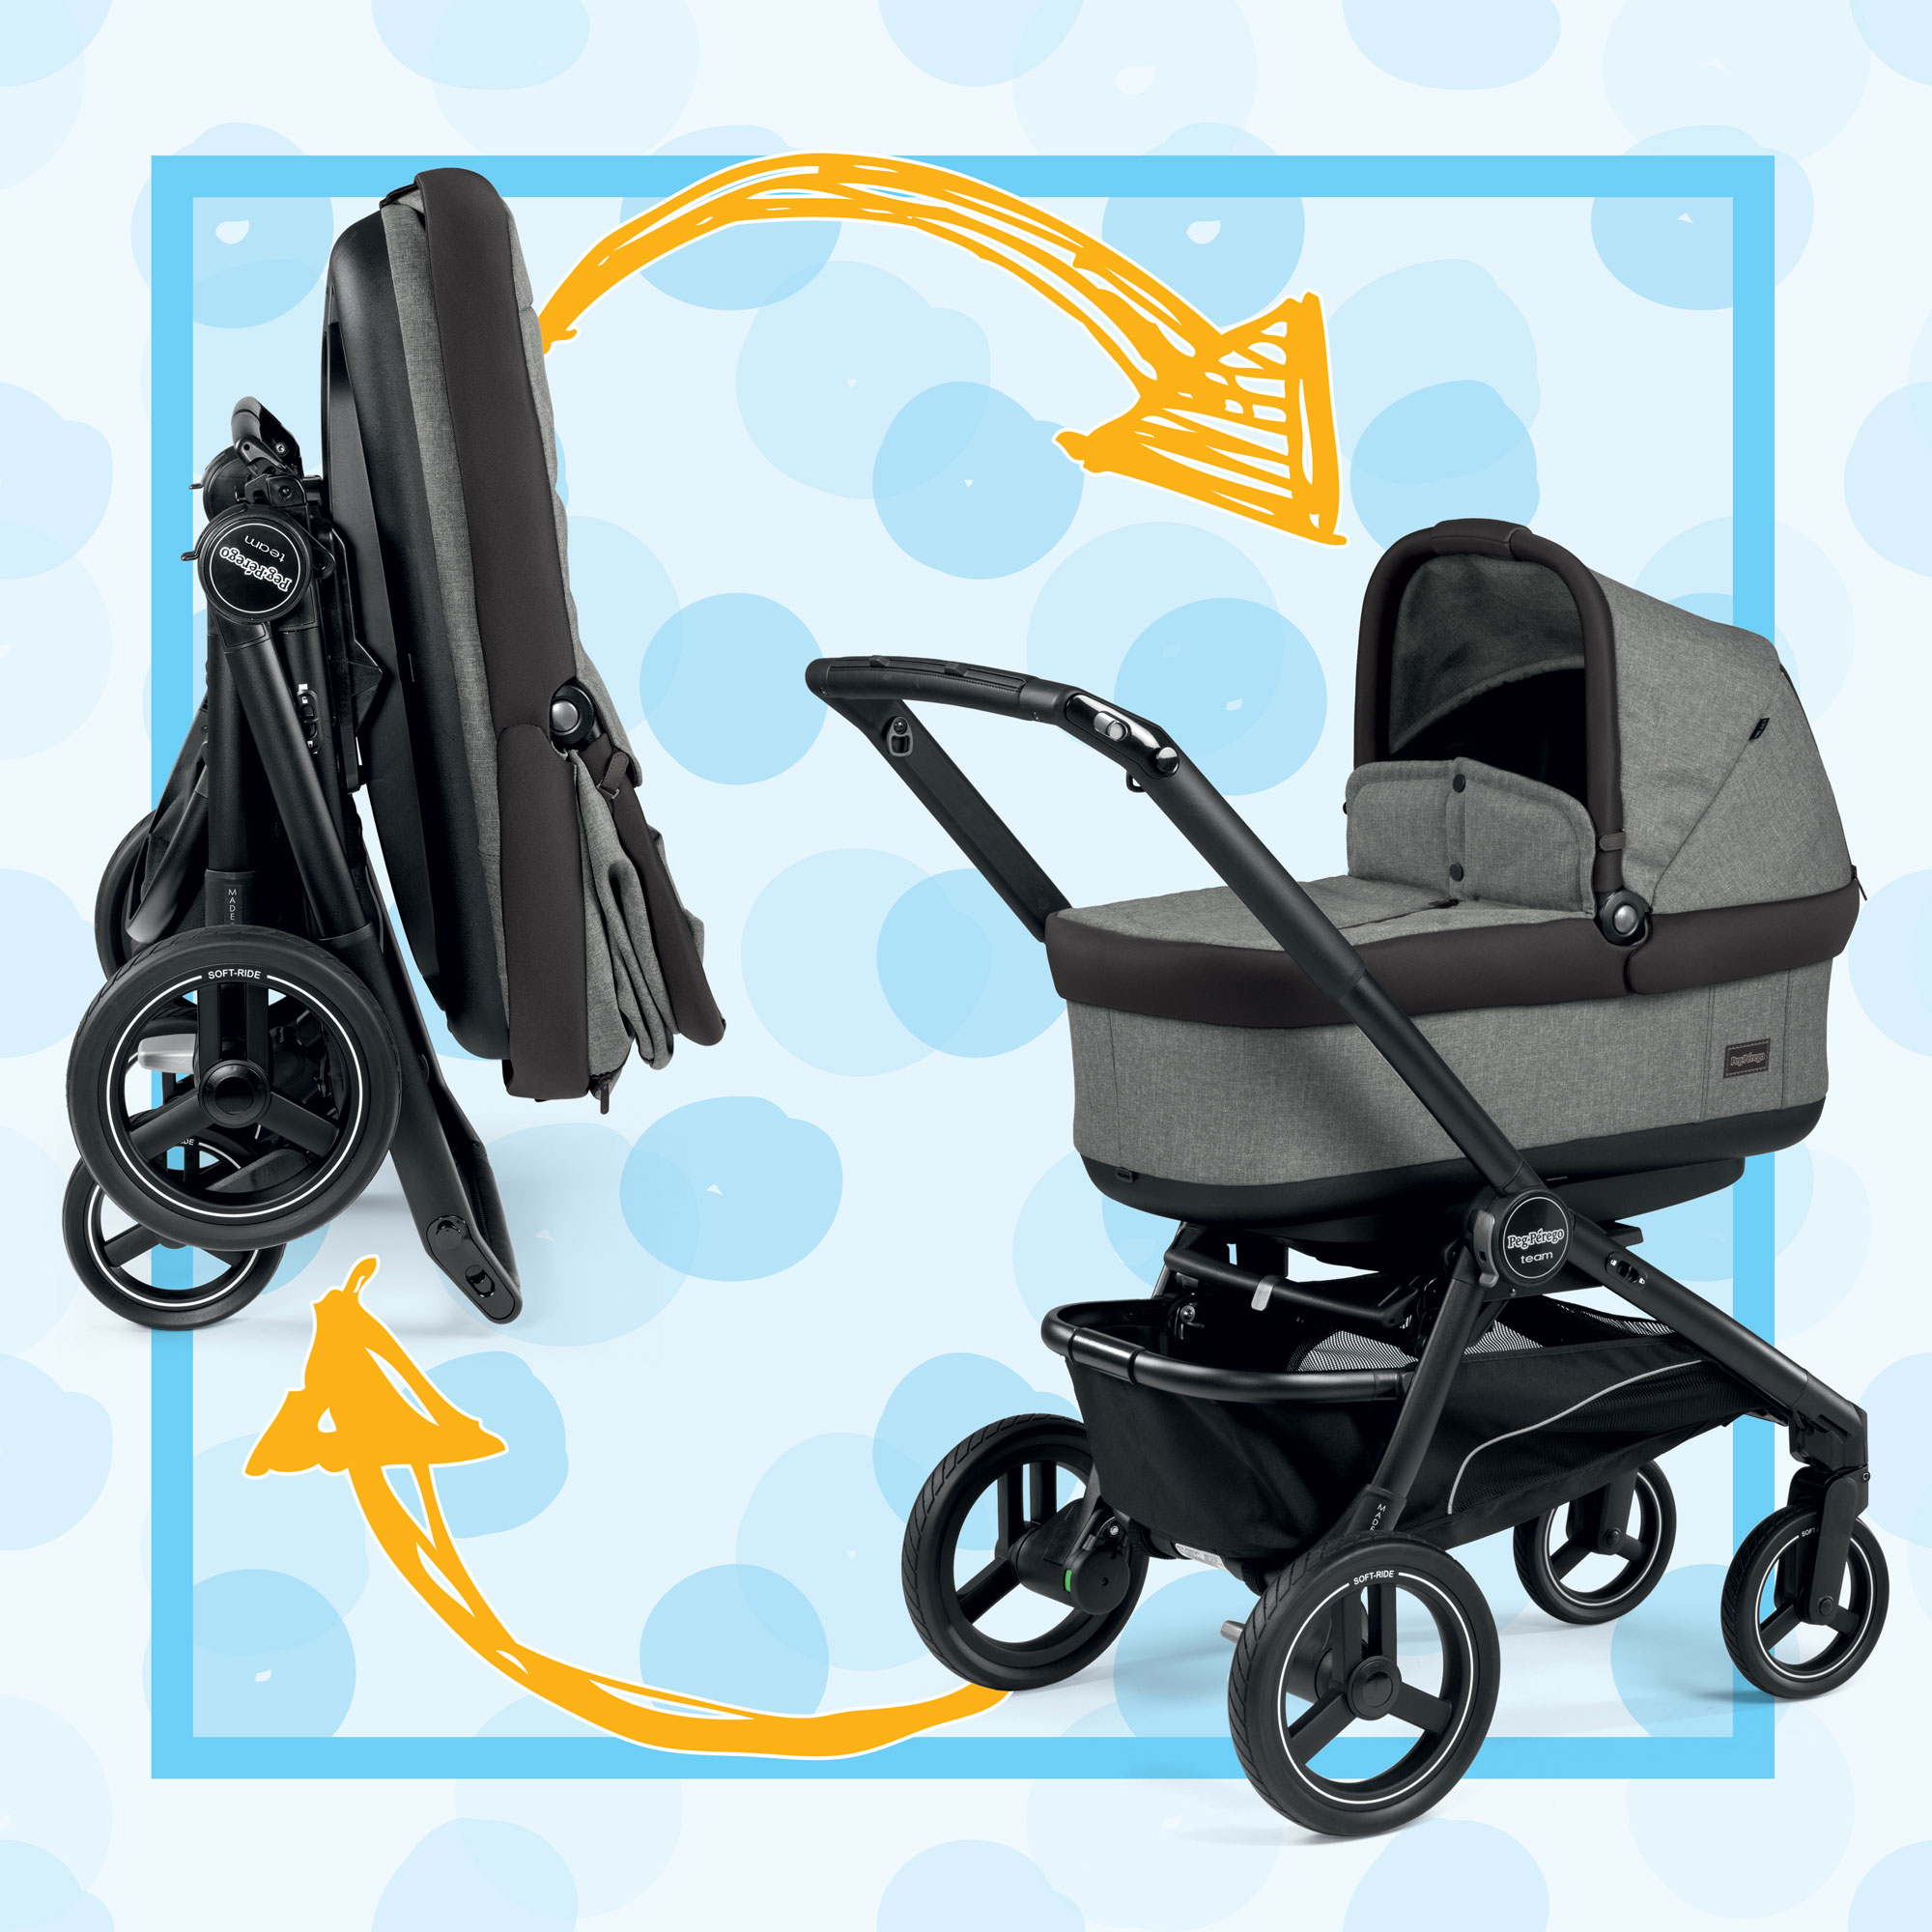 Peg Perego Pliko Matic Stroller Instructions Are You Planning To Have A Large Family Choose Team Modular